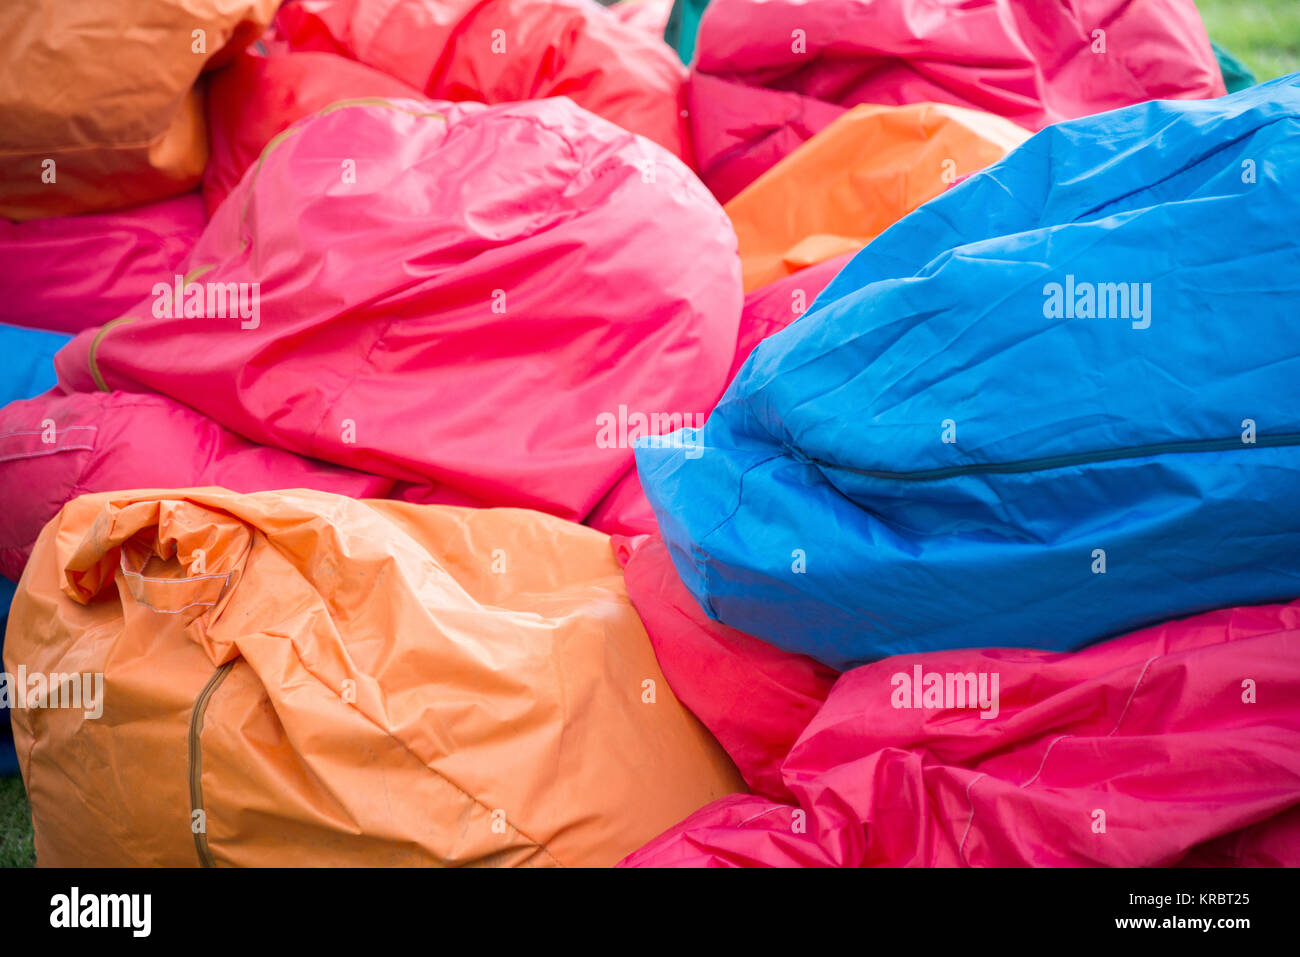 shapeless colored Bean bag chairs - Stock Image